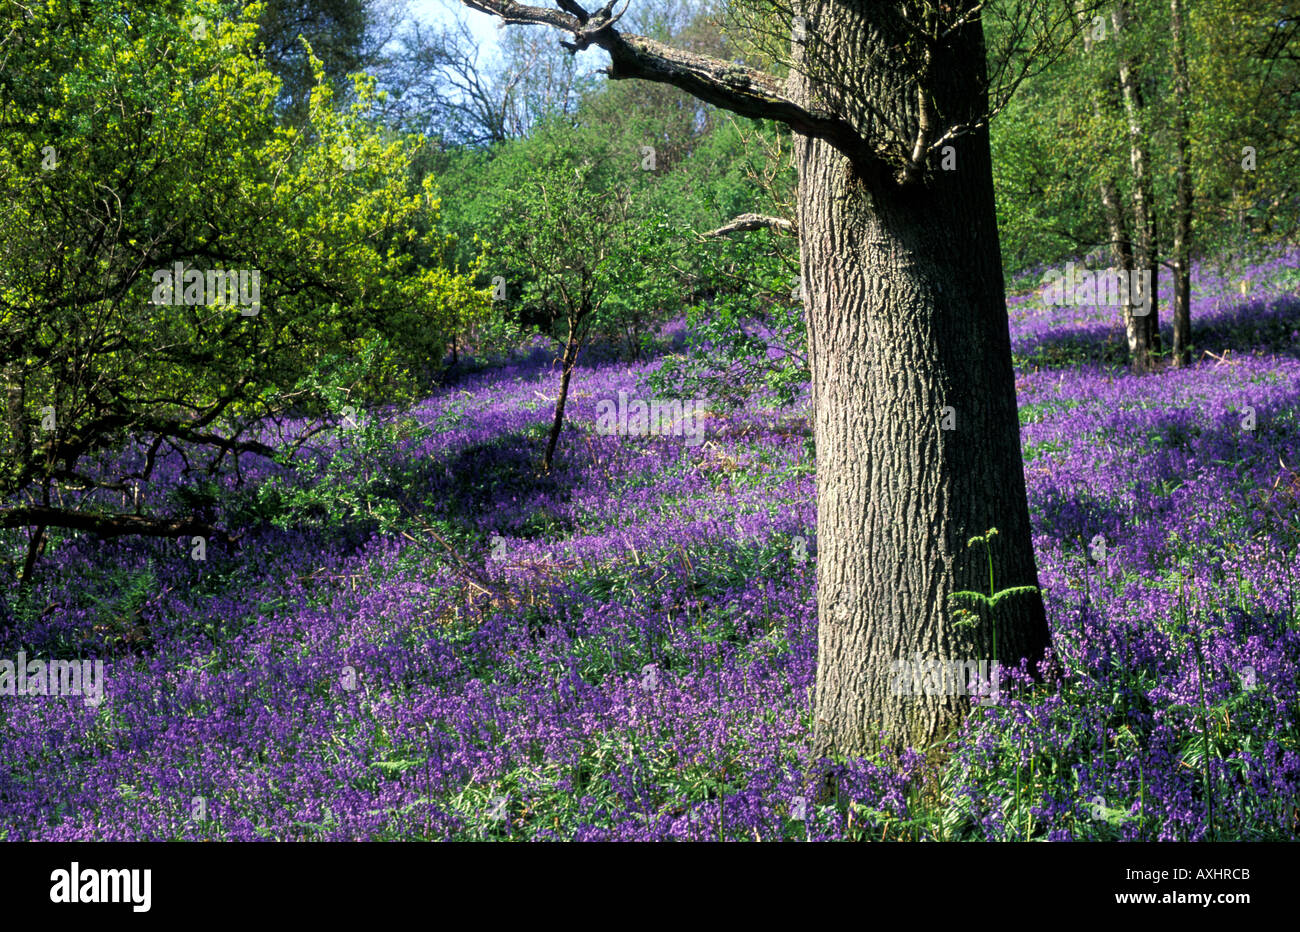 Vibrantly coloured bluebells covering the ground around a tree trunk in bluebell woods Stock Photo